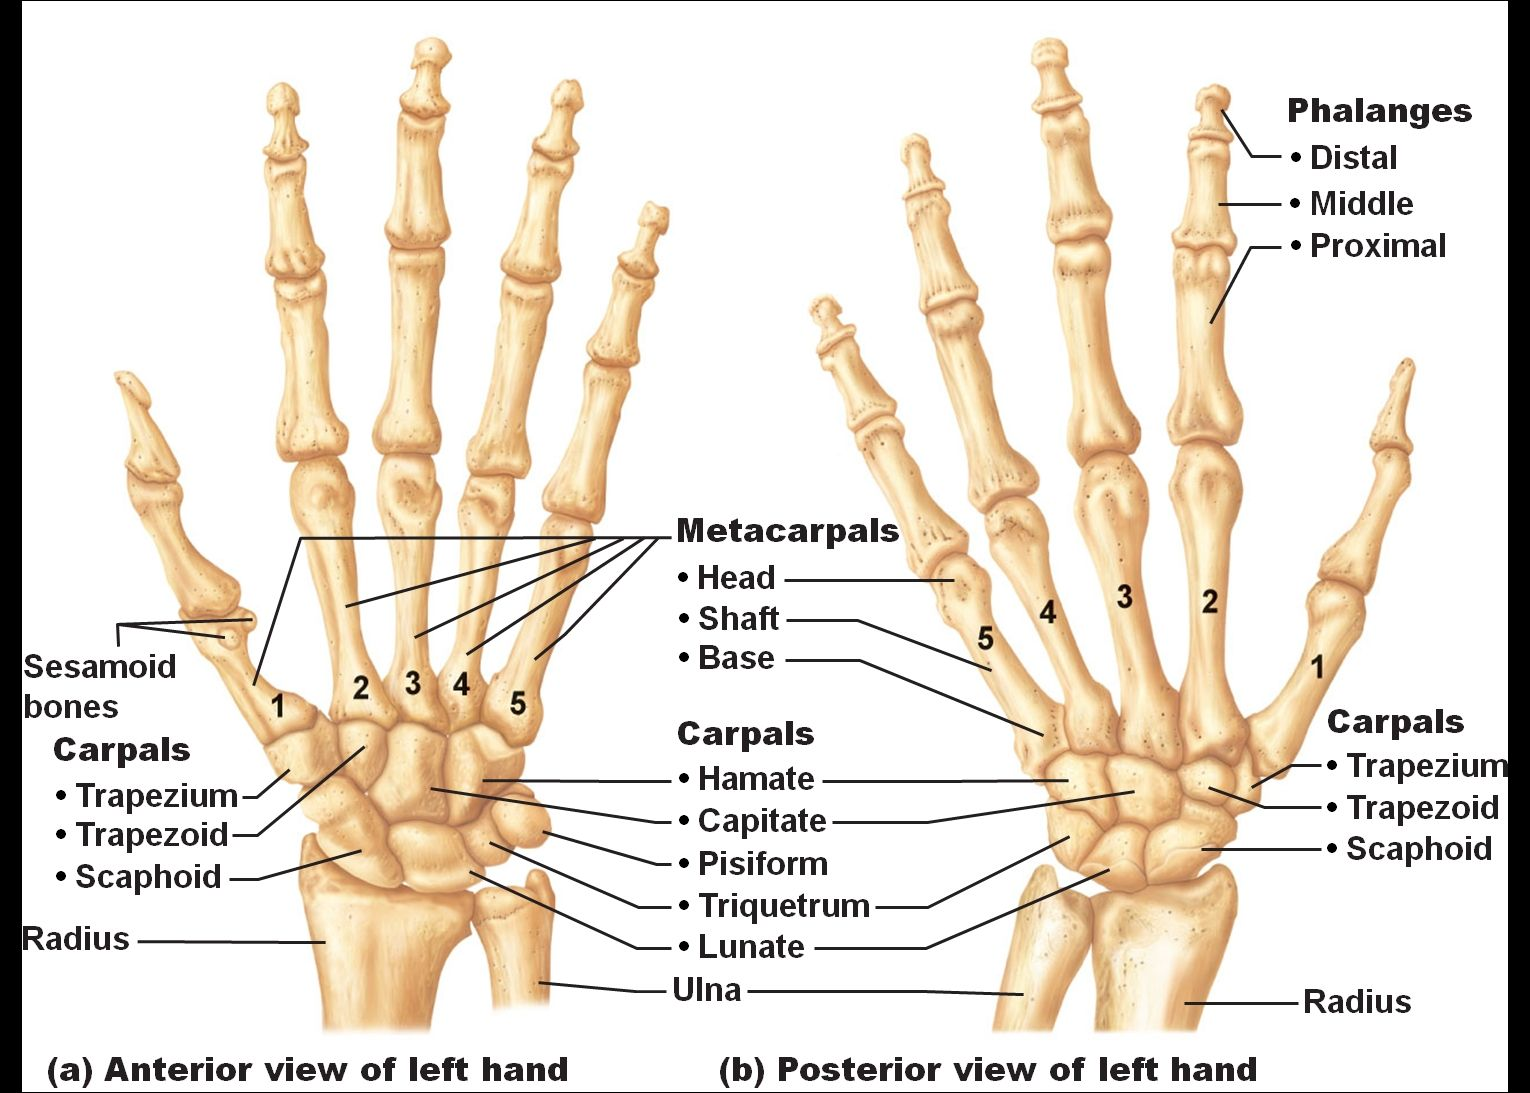 hand truck diagram hand bone photos human right hand wrist bone structure ... hand anatomy diagram